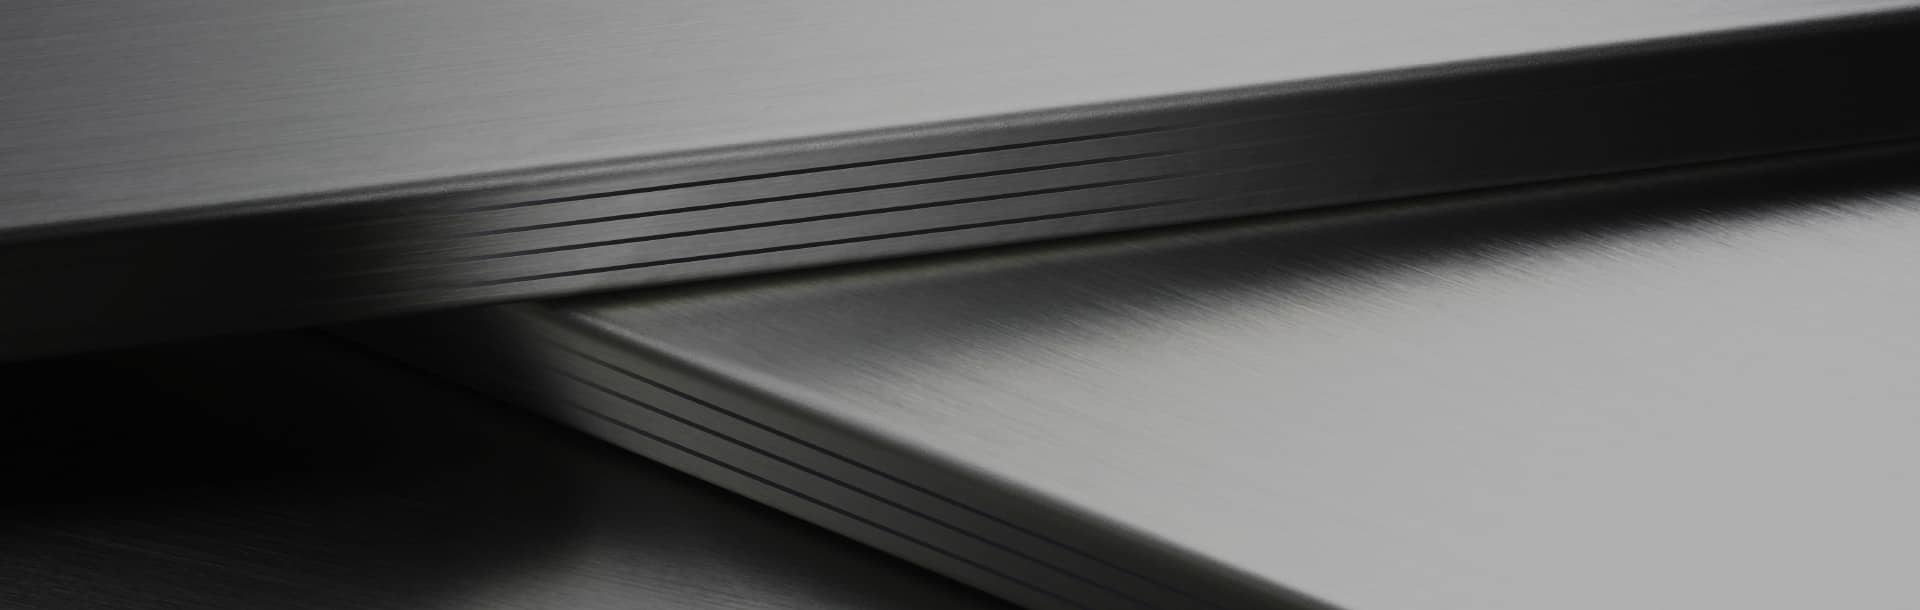 Looking to Create Something New with Your Stainless Sheet Metal?